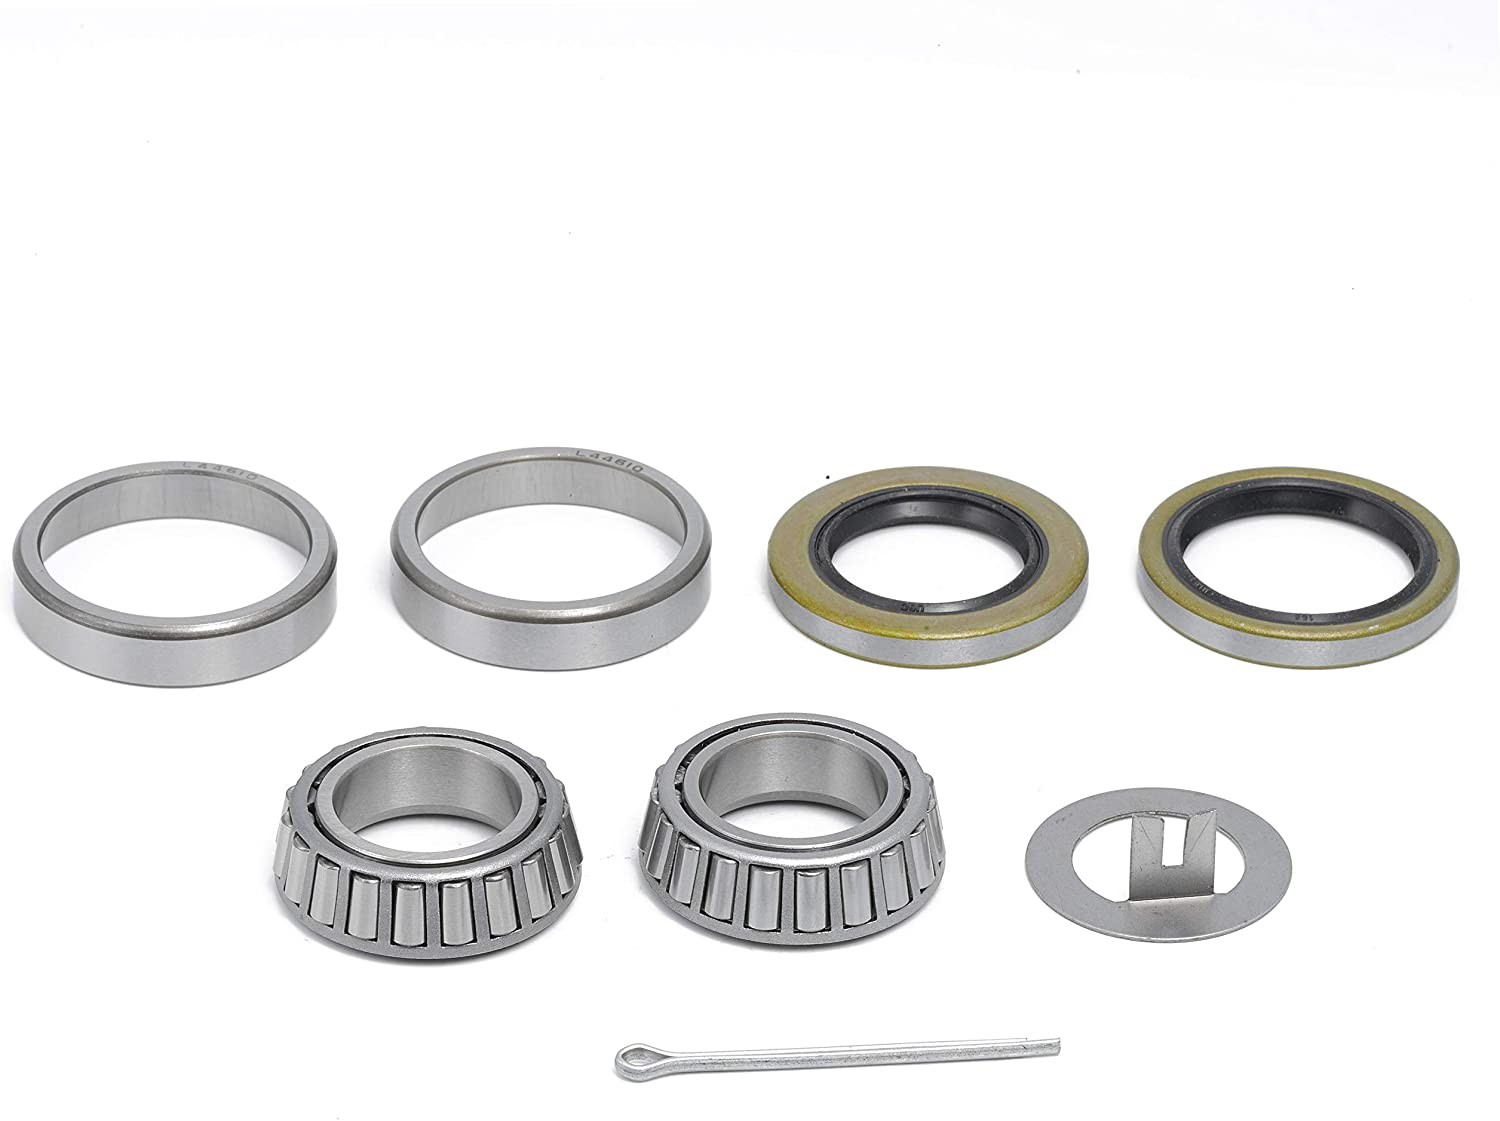 QJZ [1 Set] 2000-2200 lbs Trailer Axle Bearing Kit fits EZ Lube Spindle 1.063'' (1 1/16''), L44649/L44610, T-Washer, Cotter Pin, 12192TB (1.250'' ID) and 15192TB Seals (1.500'' ID)